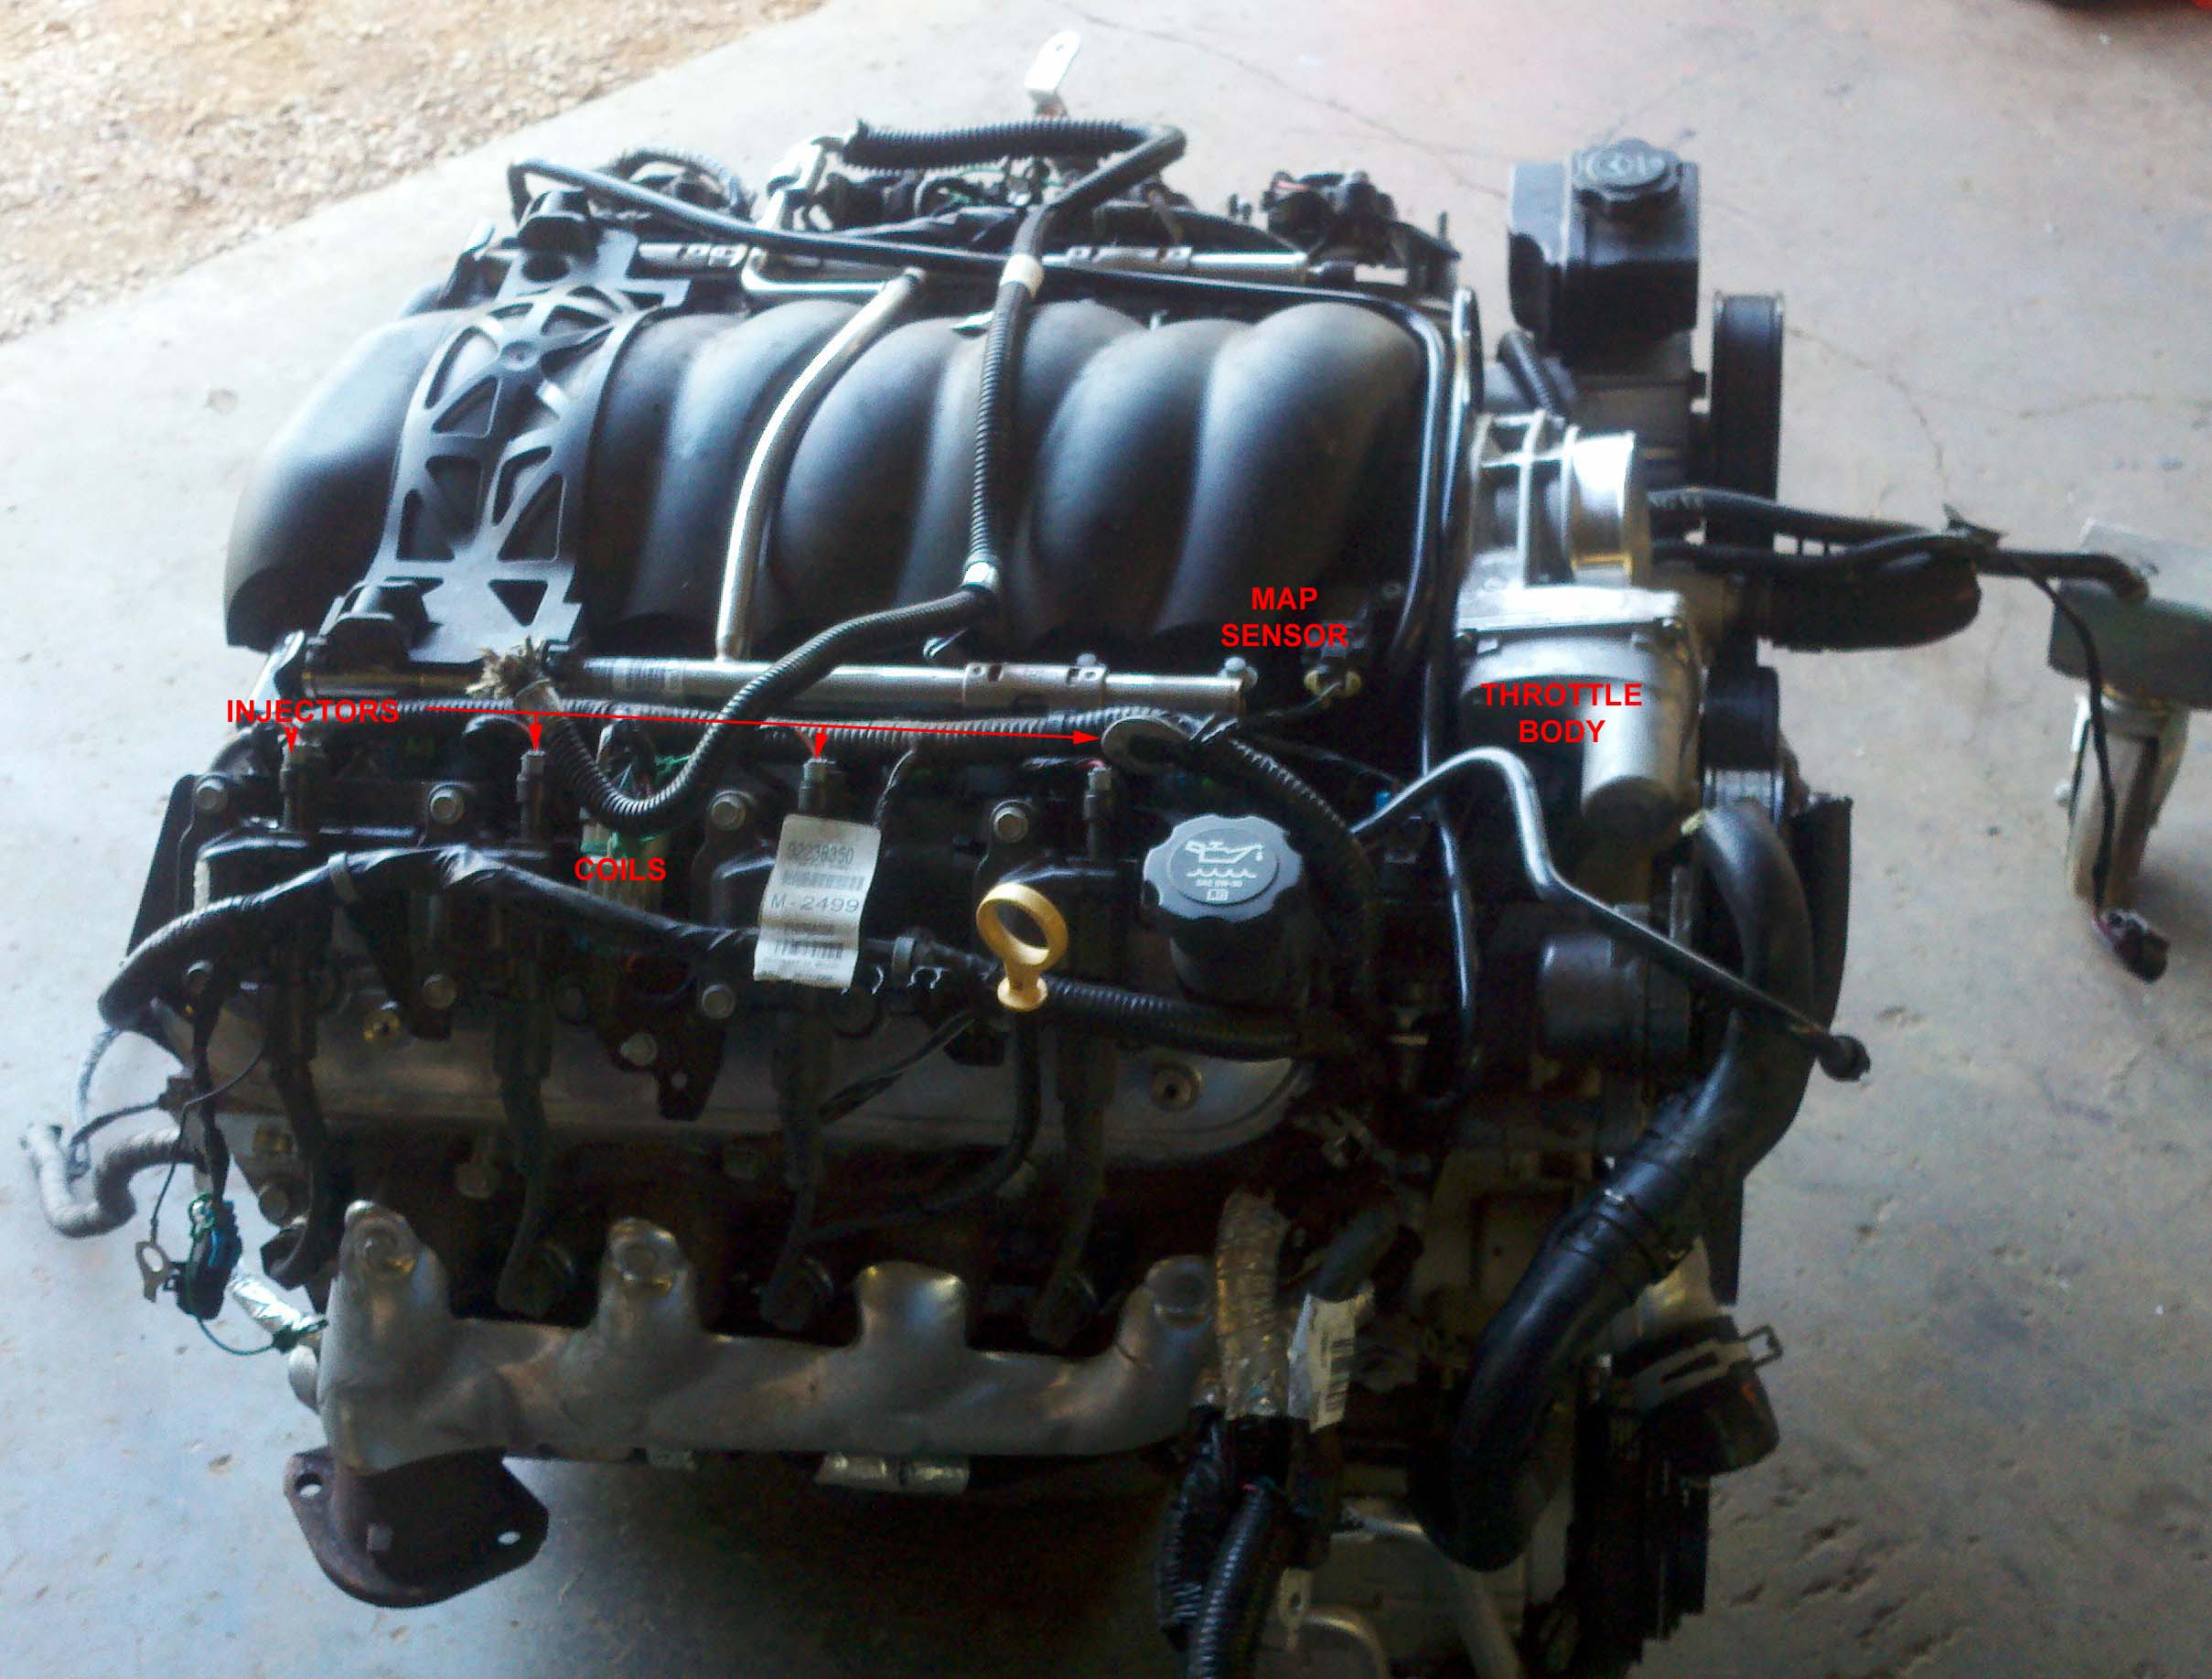 We have kept the VVT and DOD on this engine, and done away with Rear O2's,  Transmission wires, EVAP, Brake Booster Vacuum Sensor, A/C Wiring.